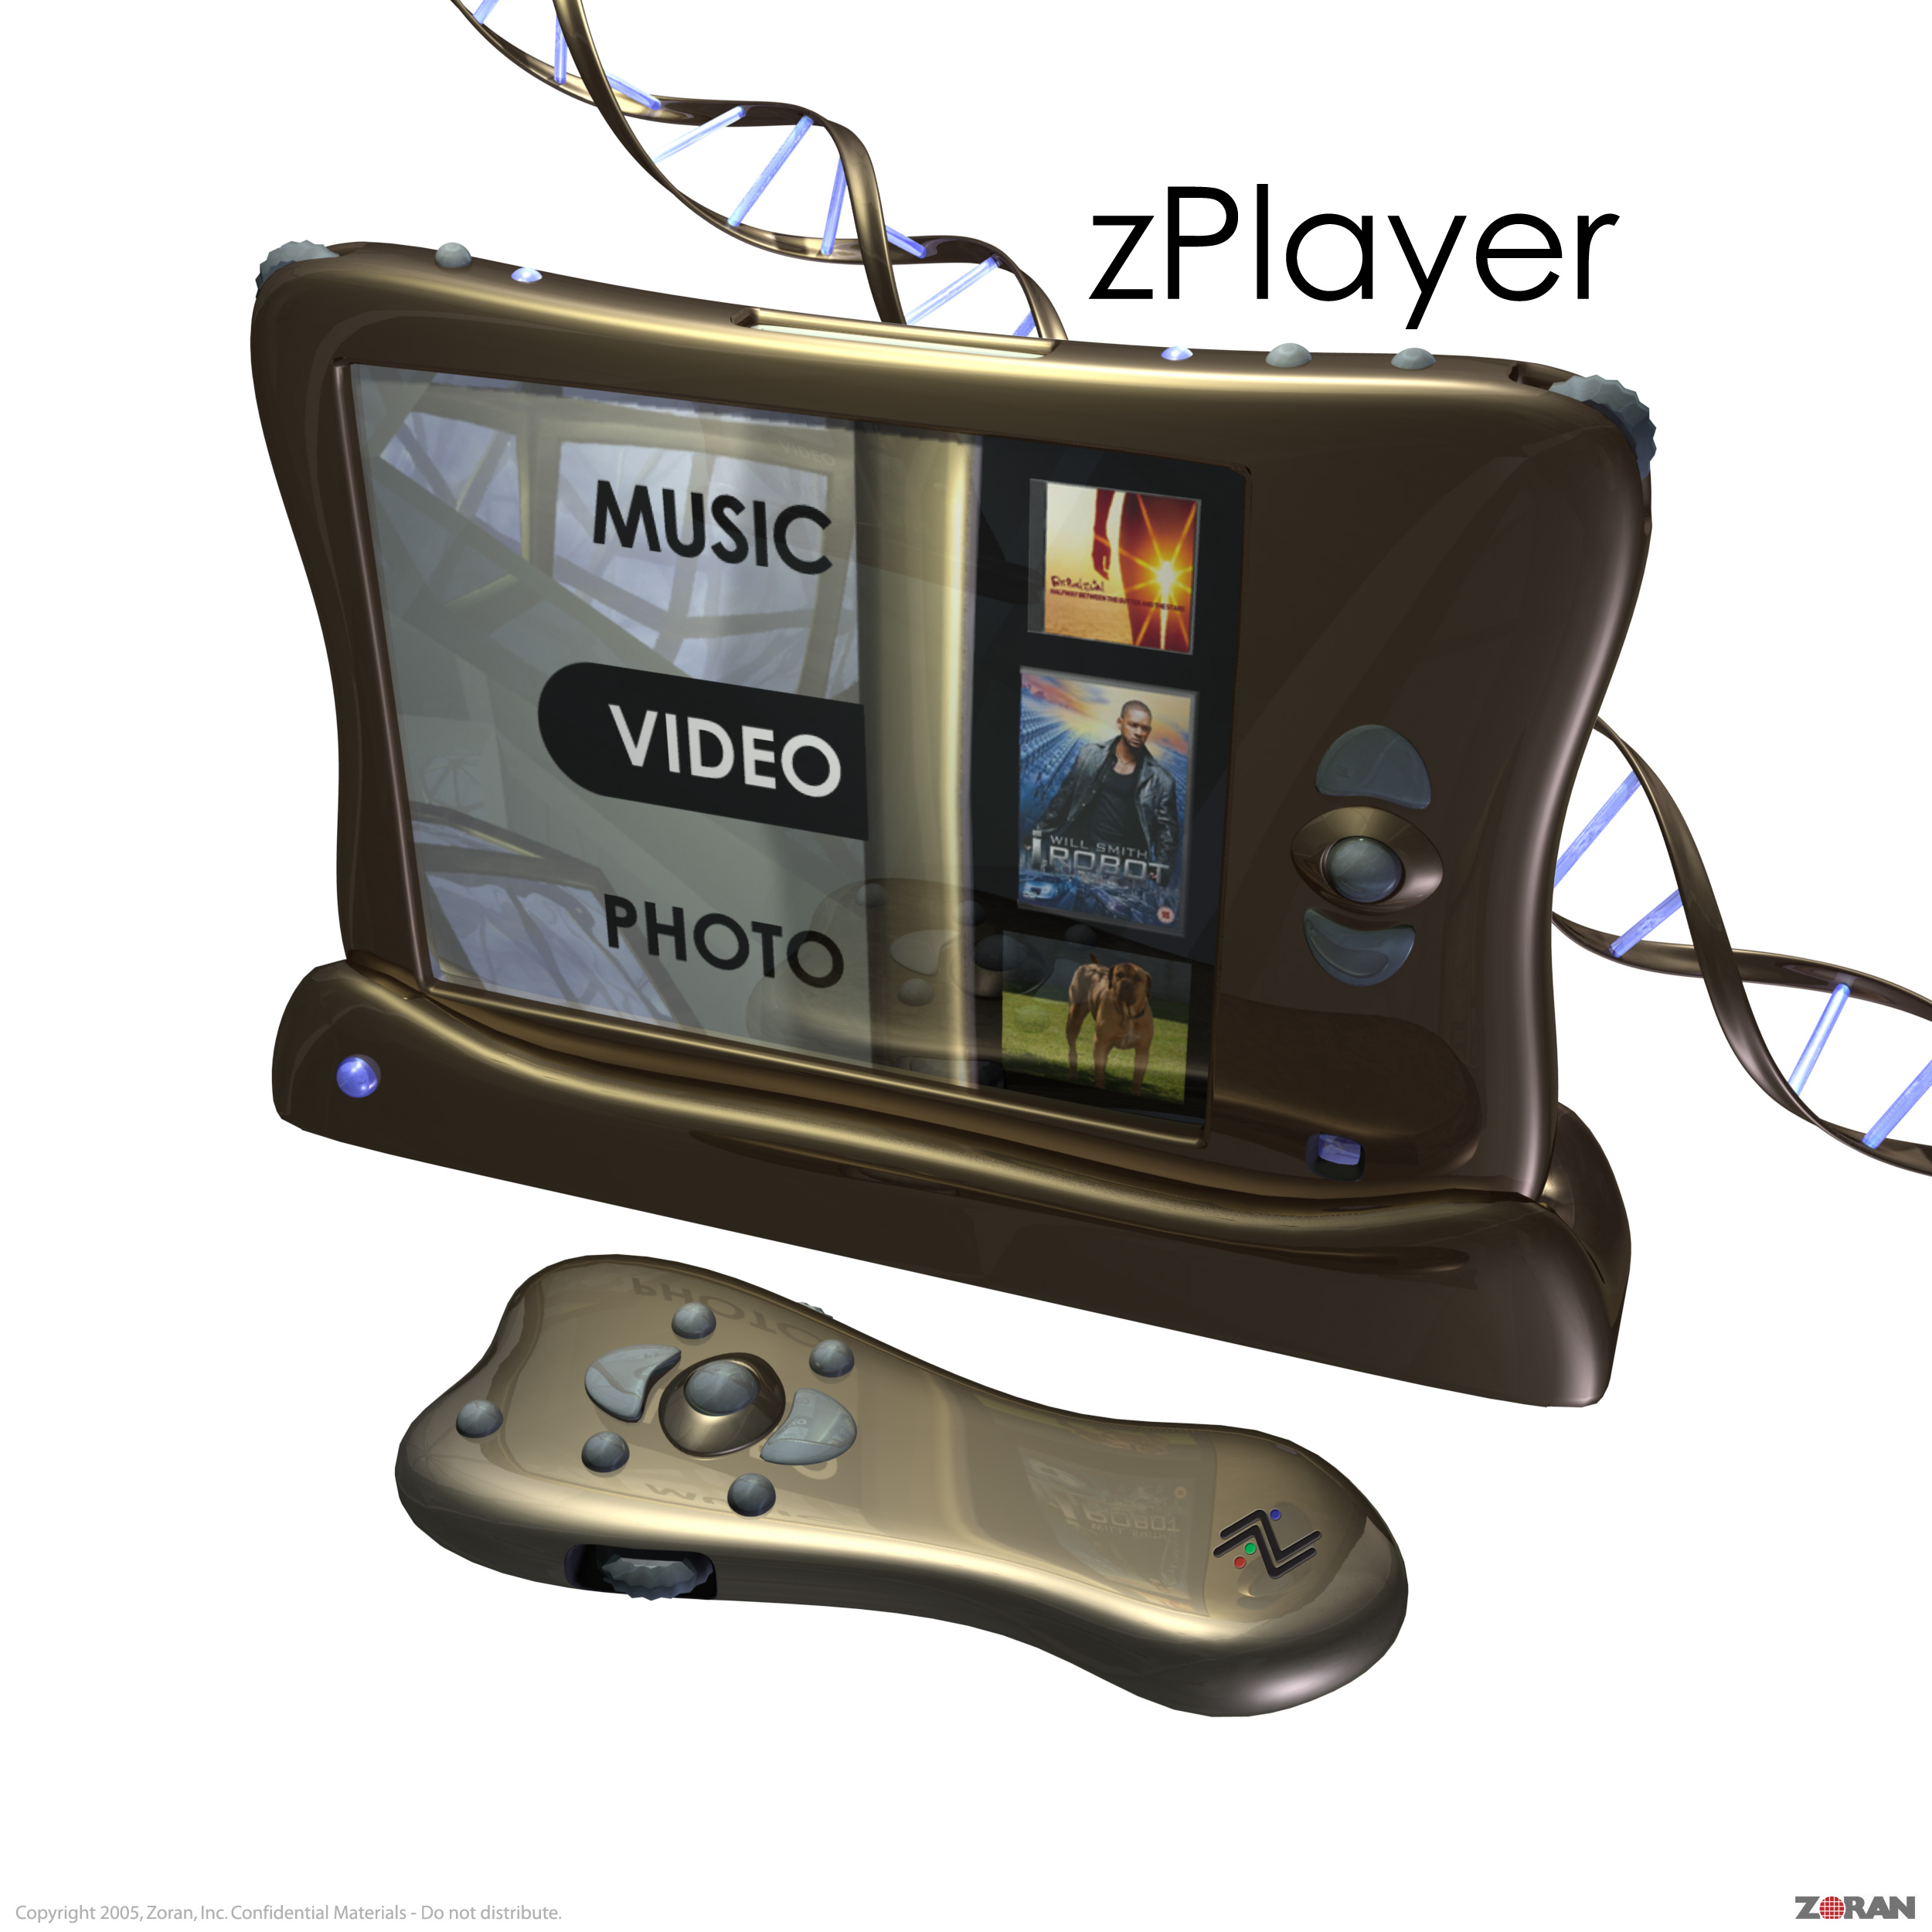 zPlayer Early Concept 3d illustration